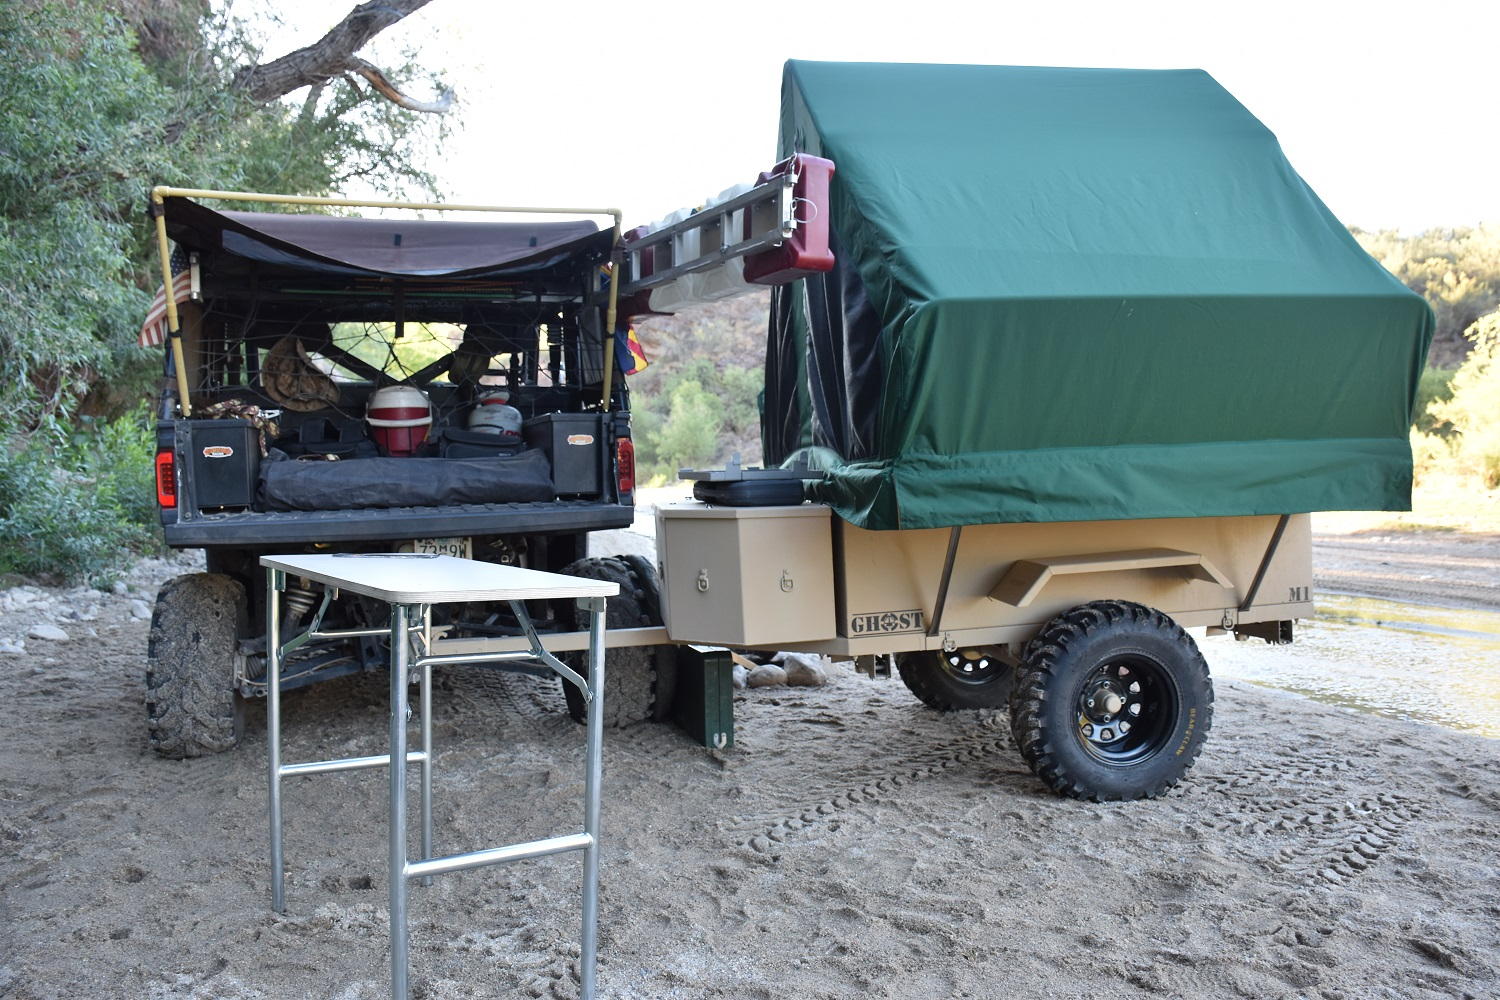 Sweet A Box 2017 Ghost Tactical Pop Up Camper Adventure Atv Rockwood Off Road Pop Up Camper Off Road Pop Up Camper Trailer curbed Off Road Pop Up Camper